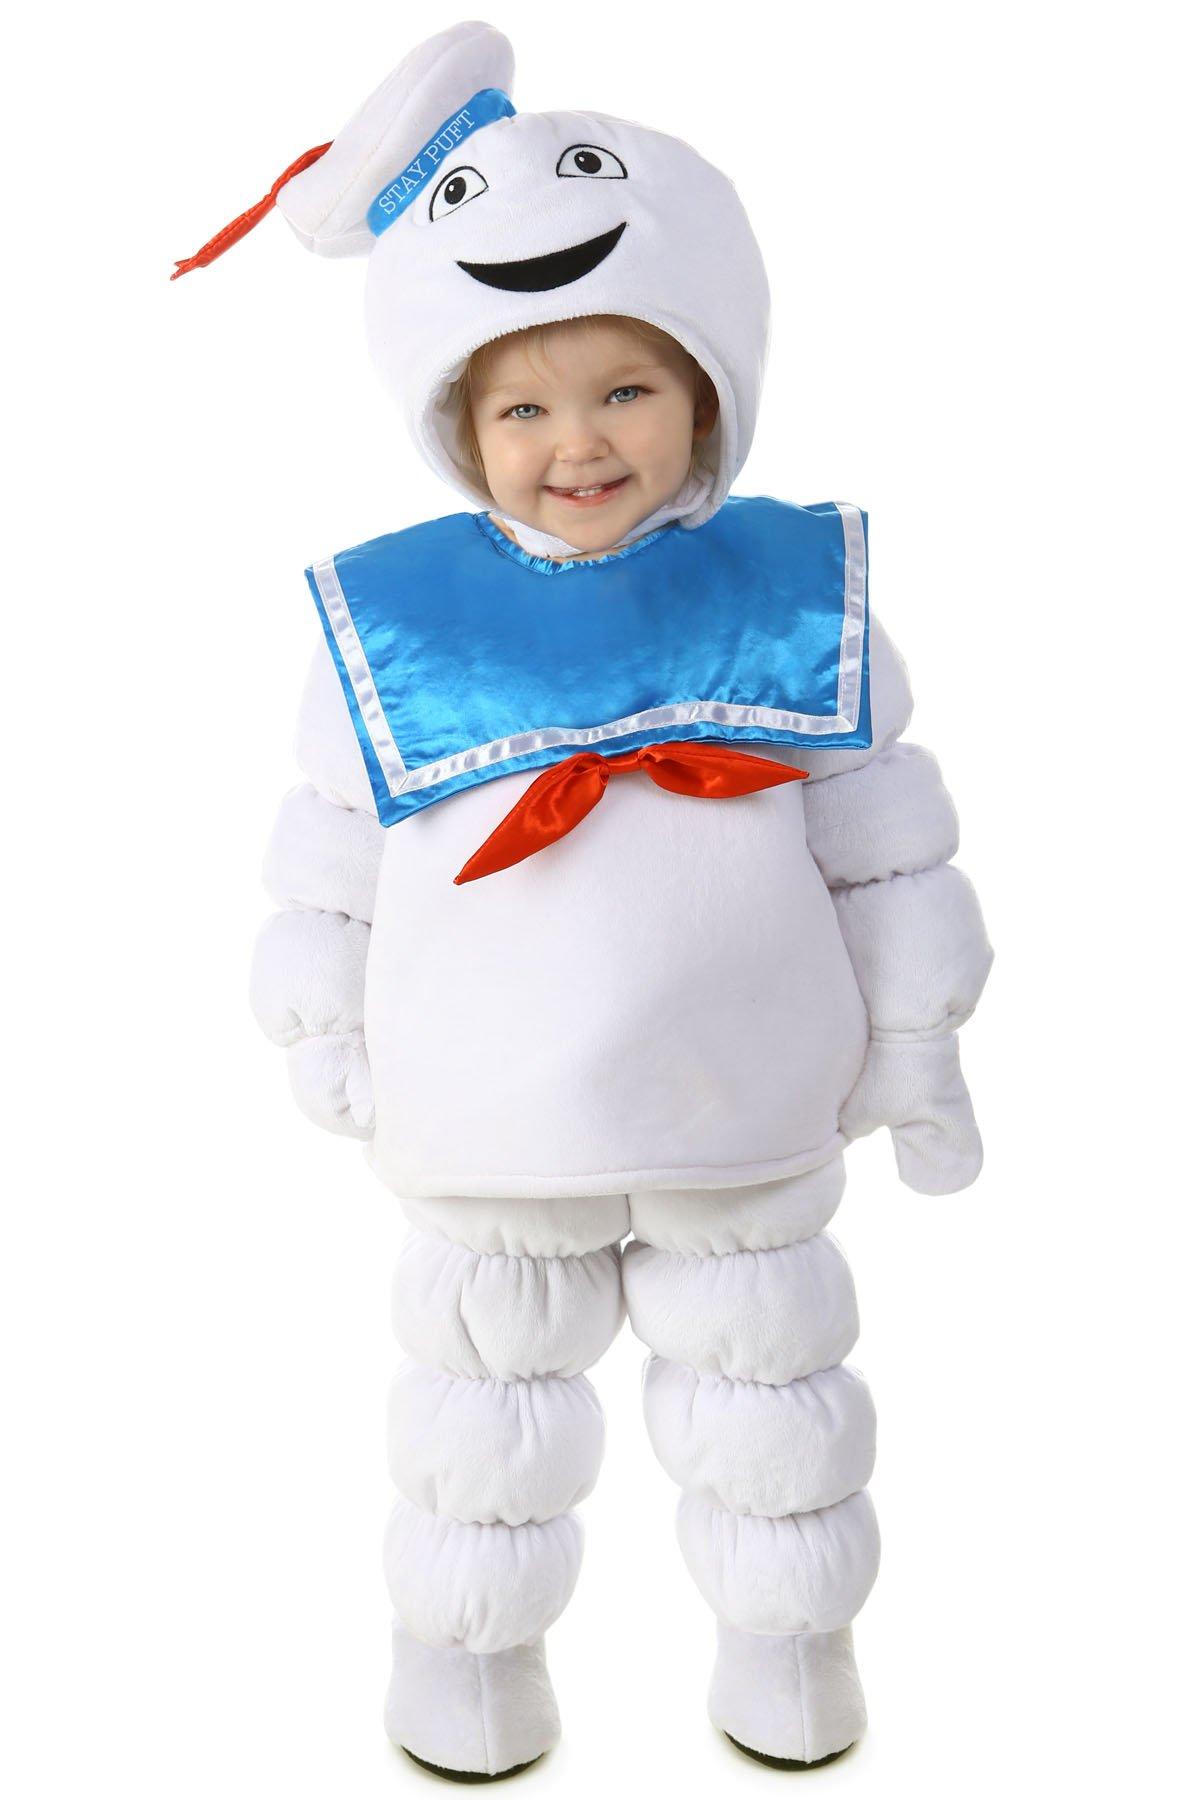 Princess Paradise Baby's Ghostbusters Stay Puft Deluxe Costume, As Shown, 12 to 18 Months